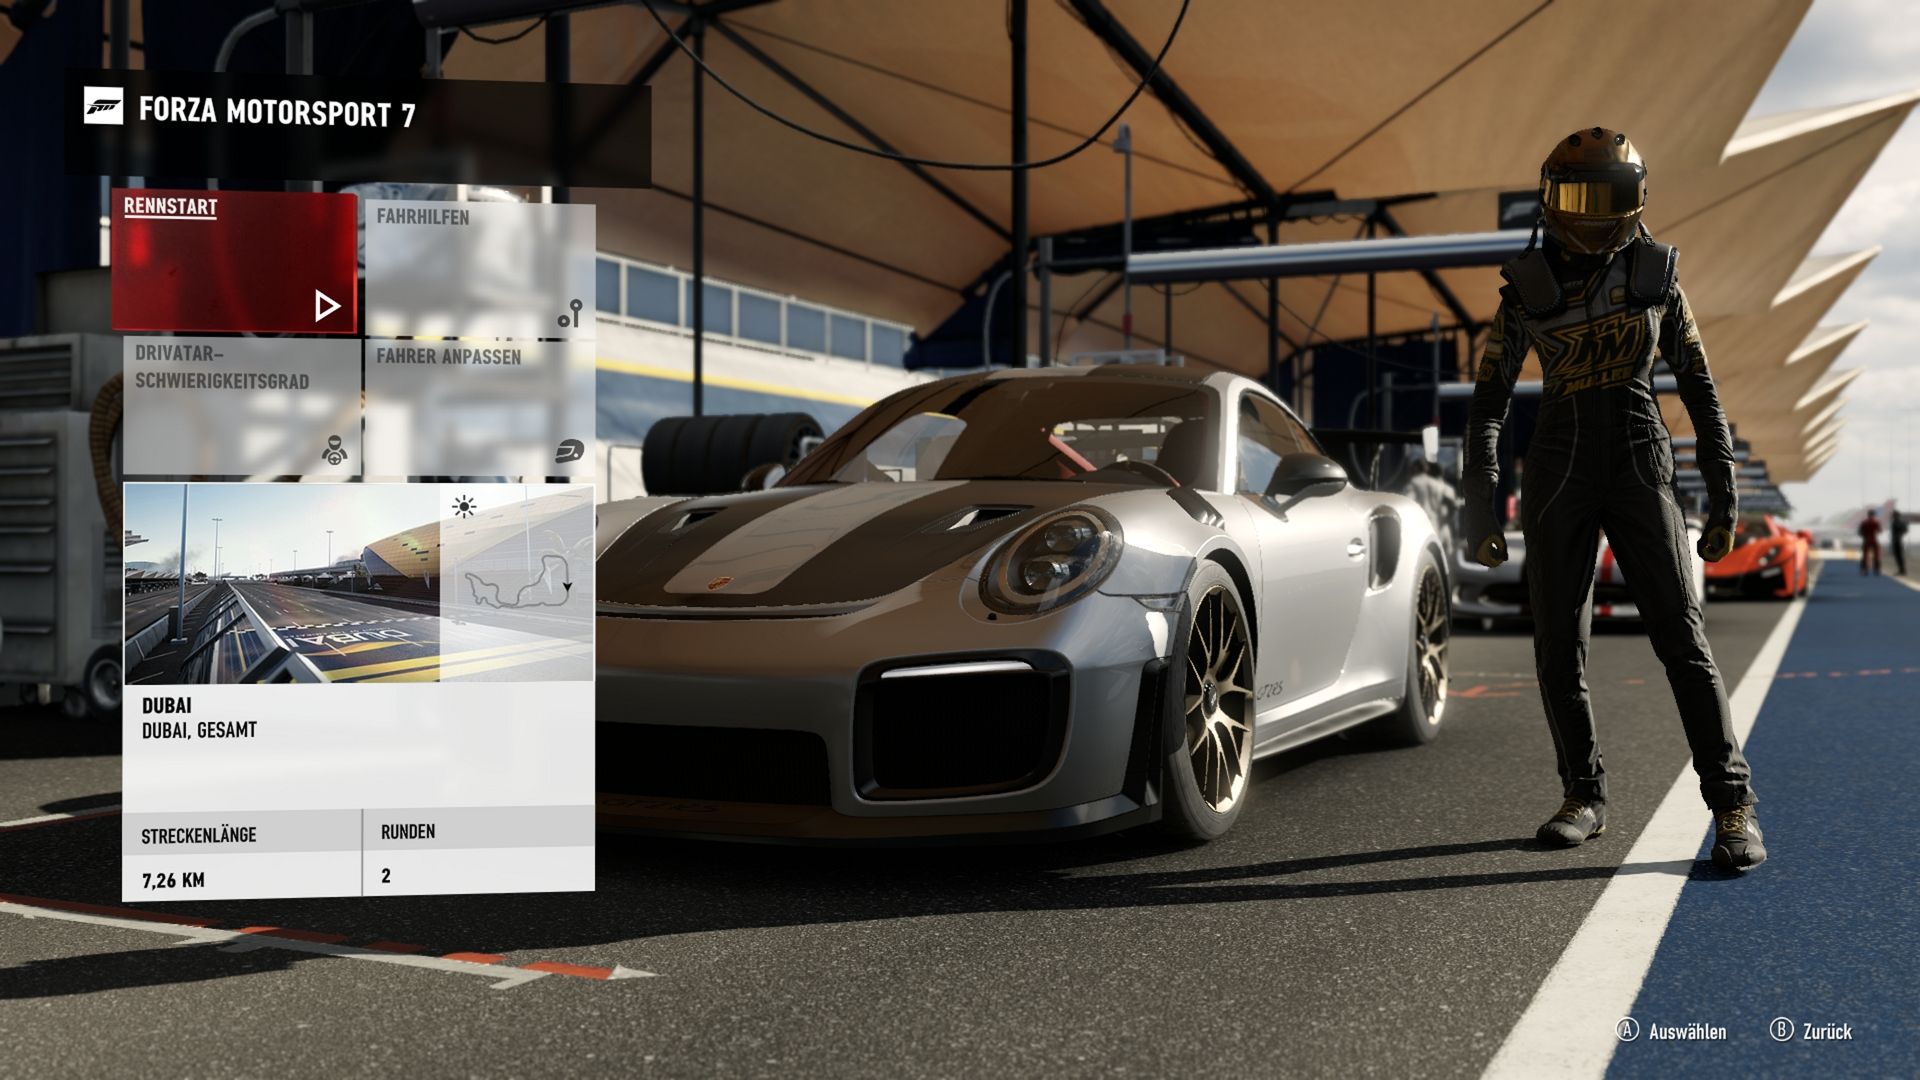 forza motorsport 7 eigene bilder aus der demo xbox one screenshot galerie. Black Bedroom Furniture Sets. Home Design Ideas